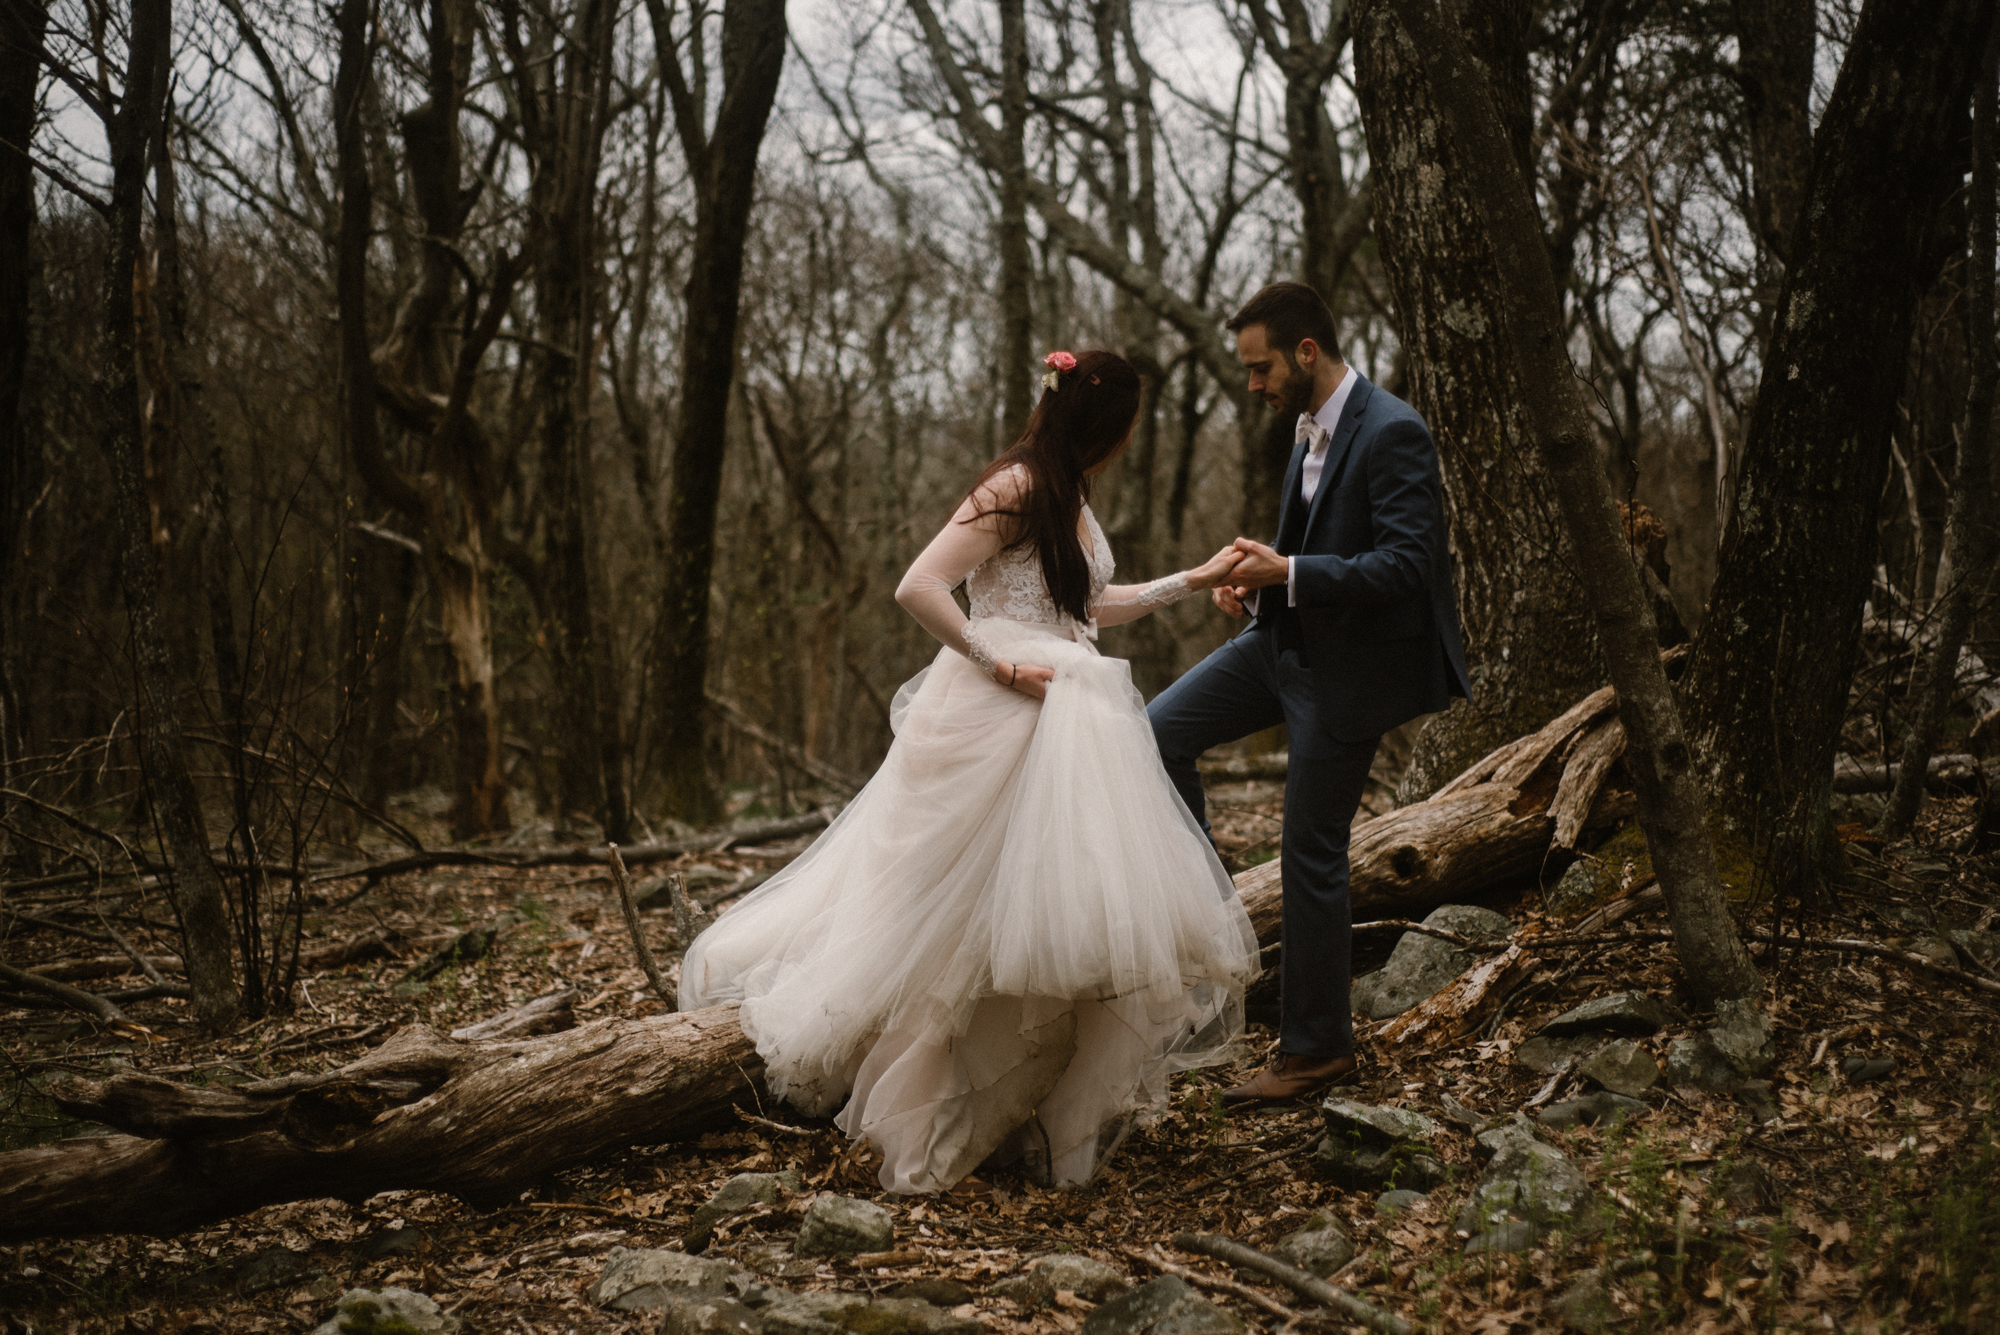 Paula and Andrew - Small Adventurous Wedding in Shenandoah National Park - Blue Ridge Mountain Wedding - White Sails Creative - Mountain Elopement_45.jpg